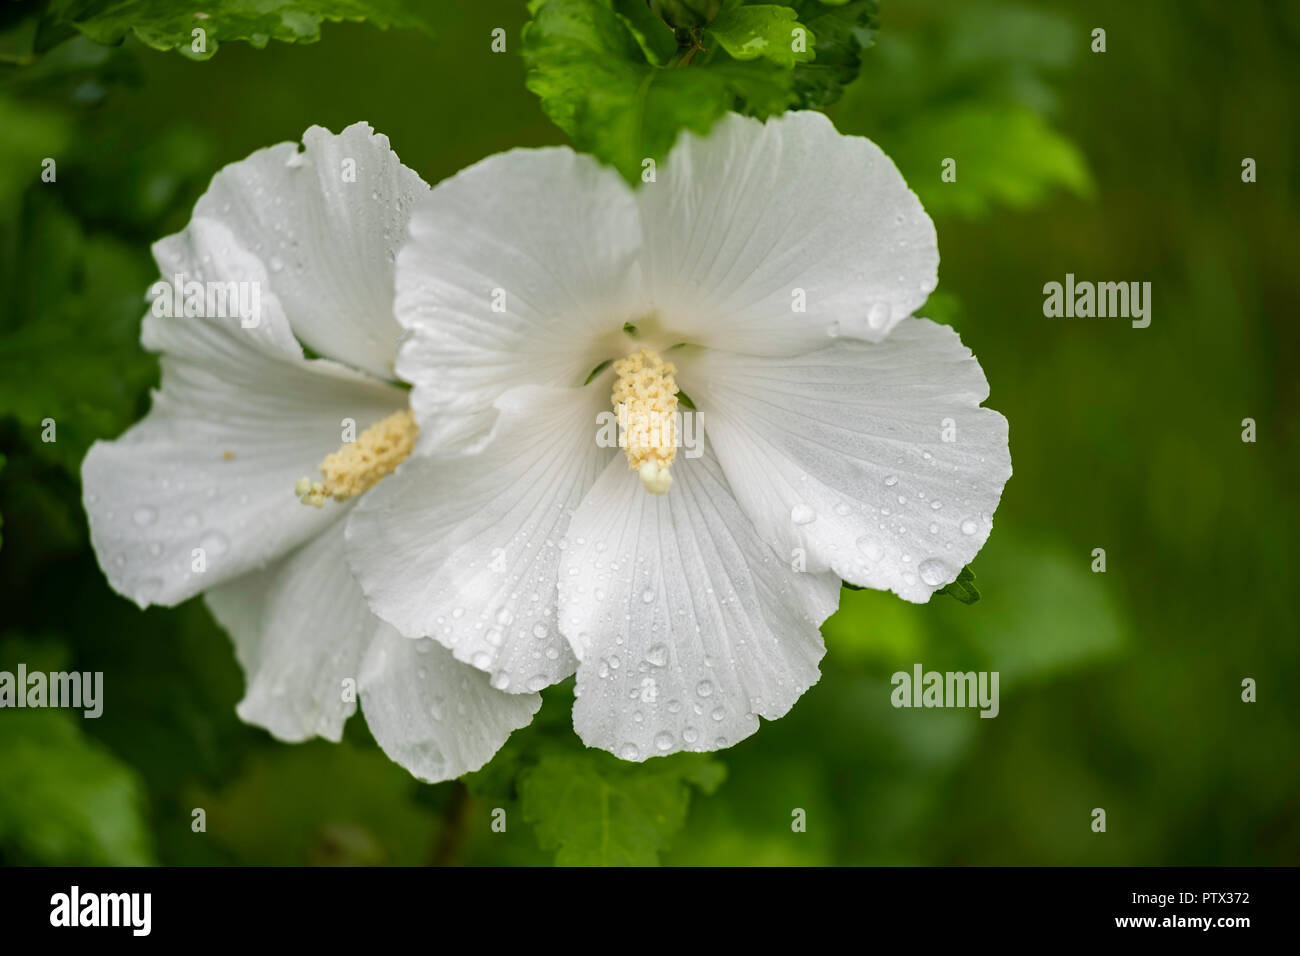 Two White Flowers On A Rose Of Sharon Shrub Althea Hibiscus